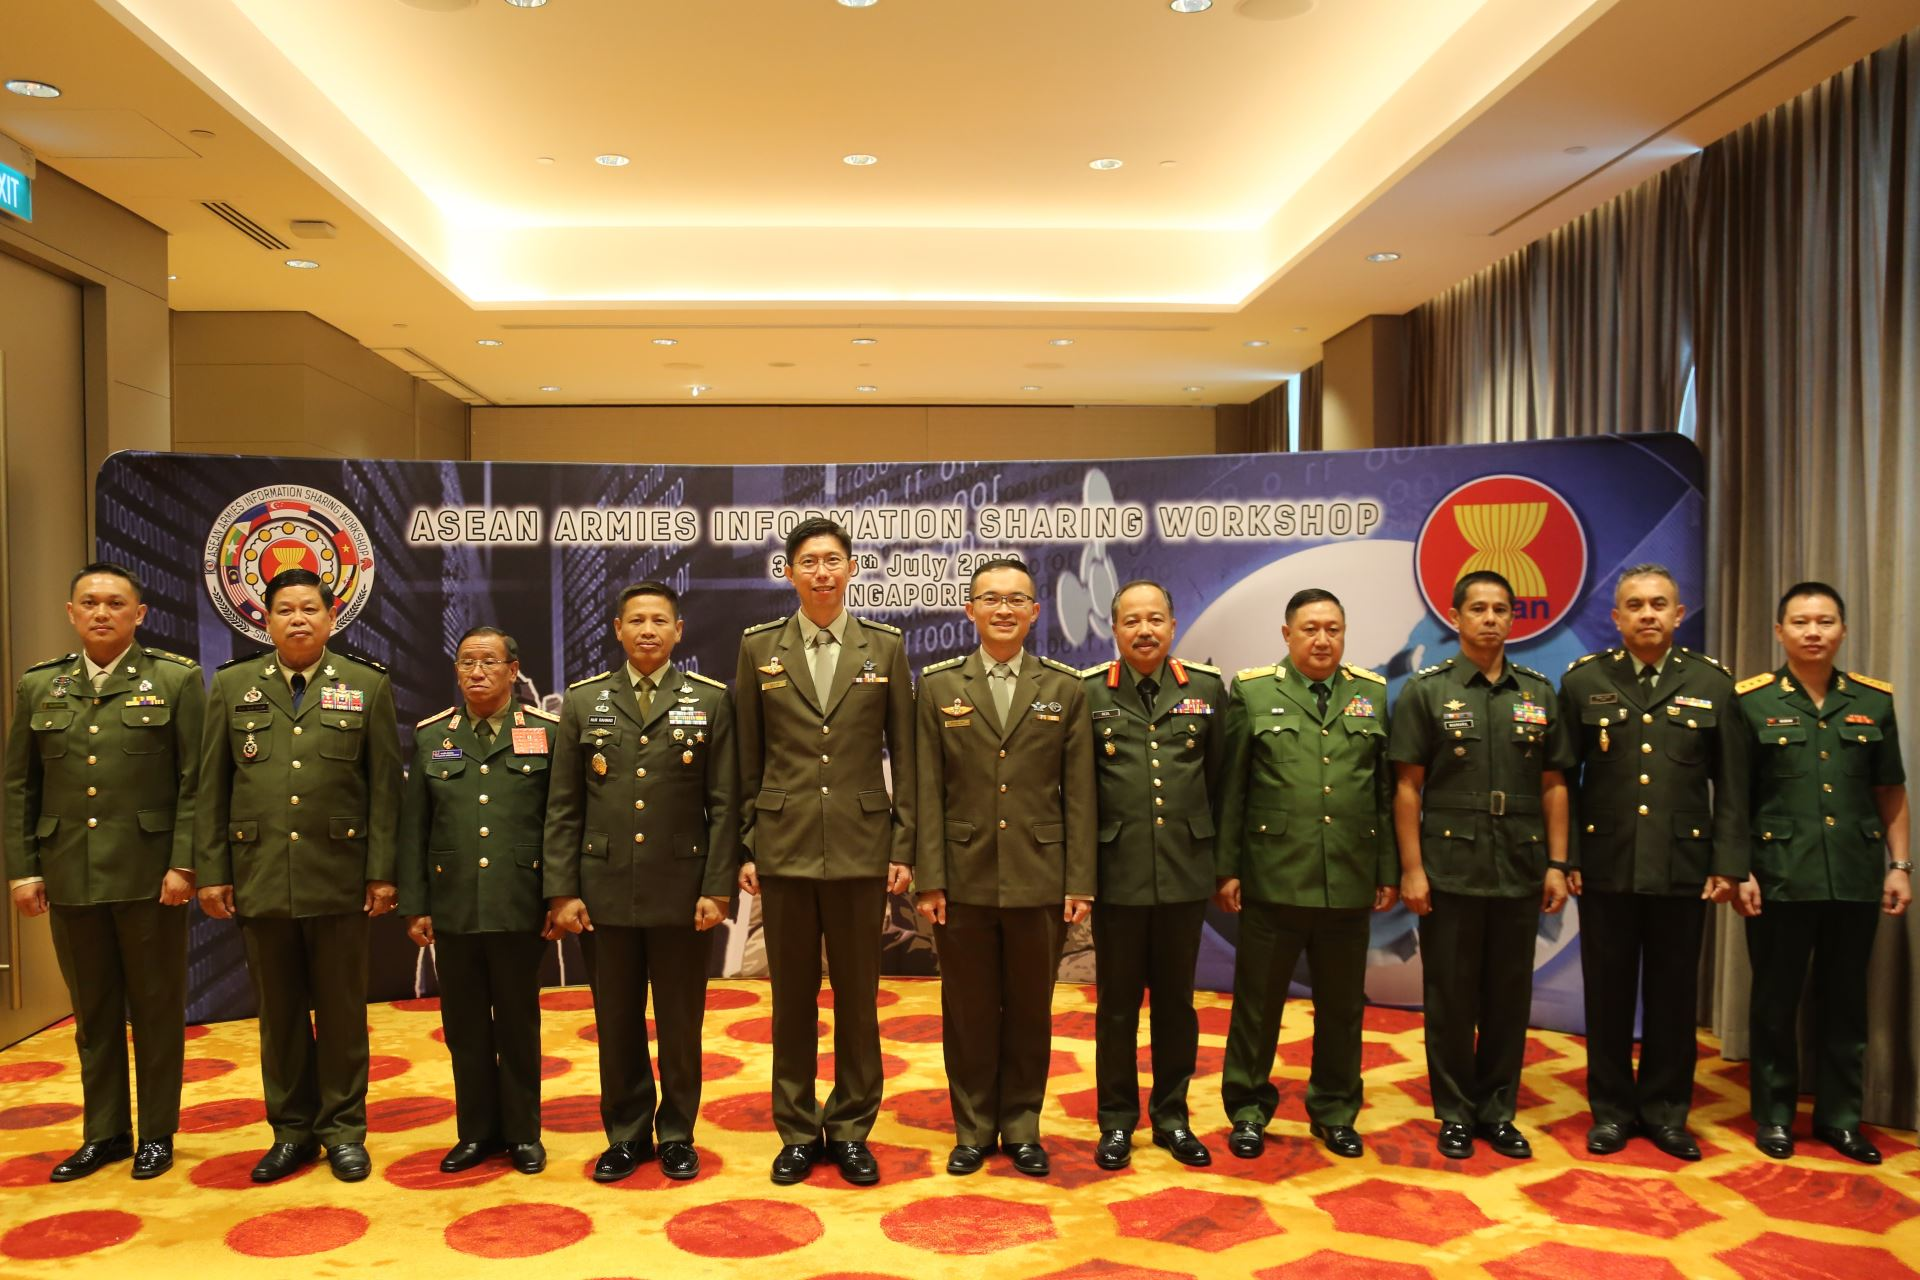 Singapore's Chief of Army Brigadier-General (BG) Goh Si Hou (fifth from left) with the ASEAN Armies' Intelligence Chiefs at the inaugural ASEAN Armies Information Sharing Workshop (AAISW).